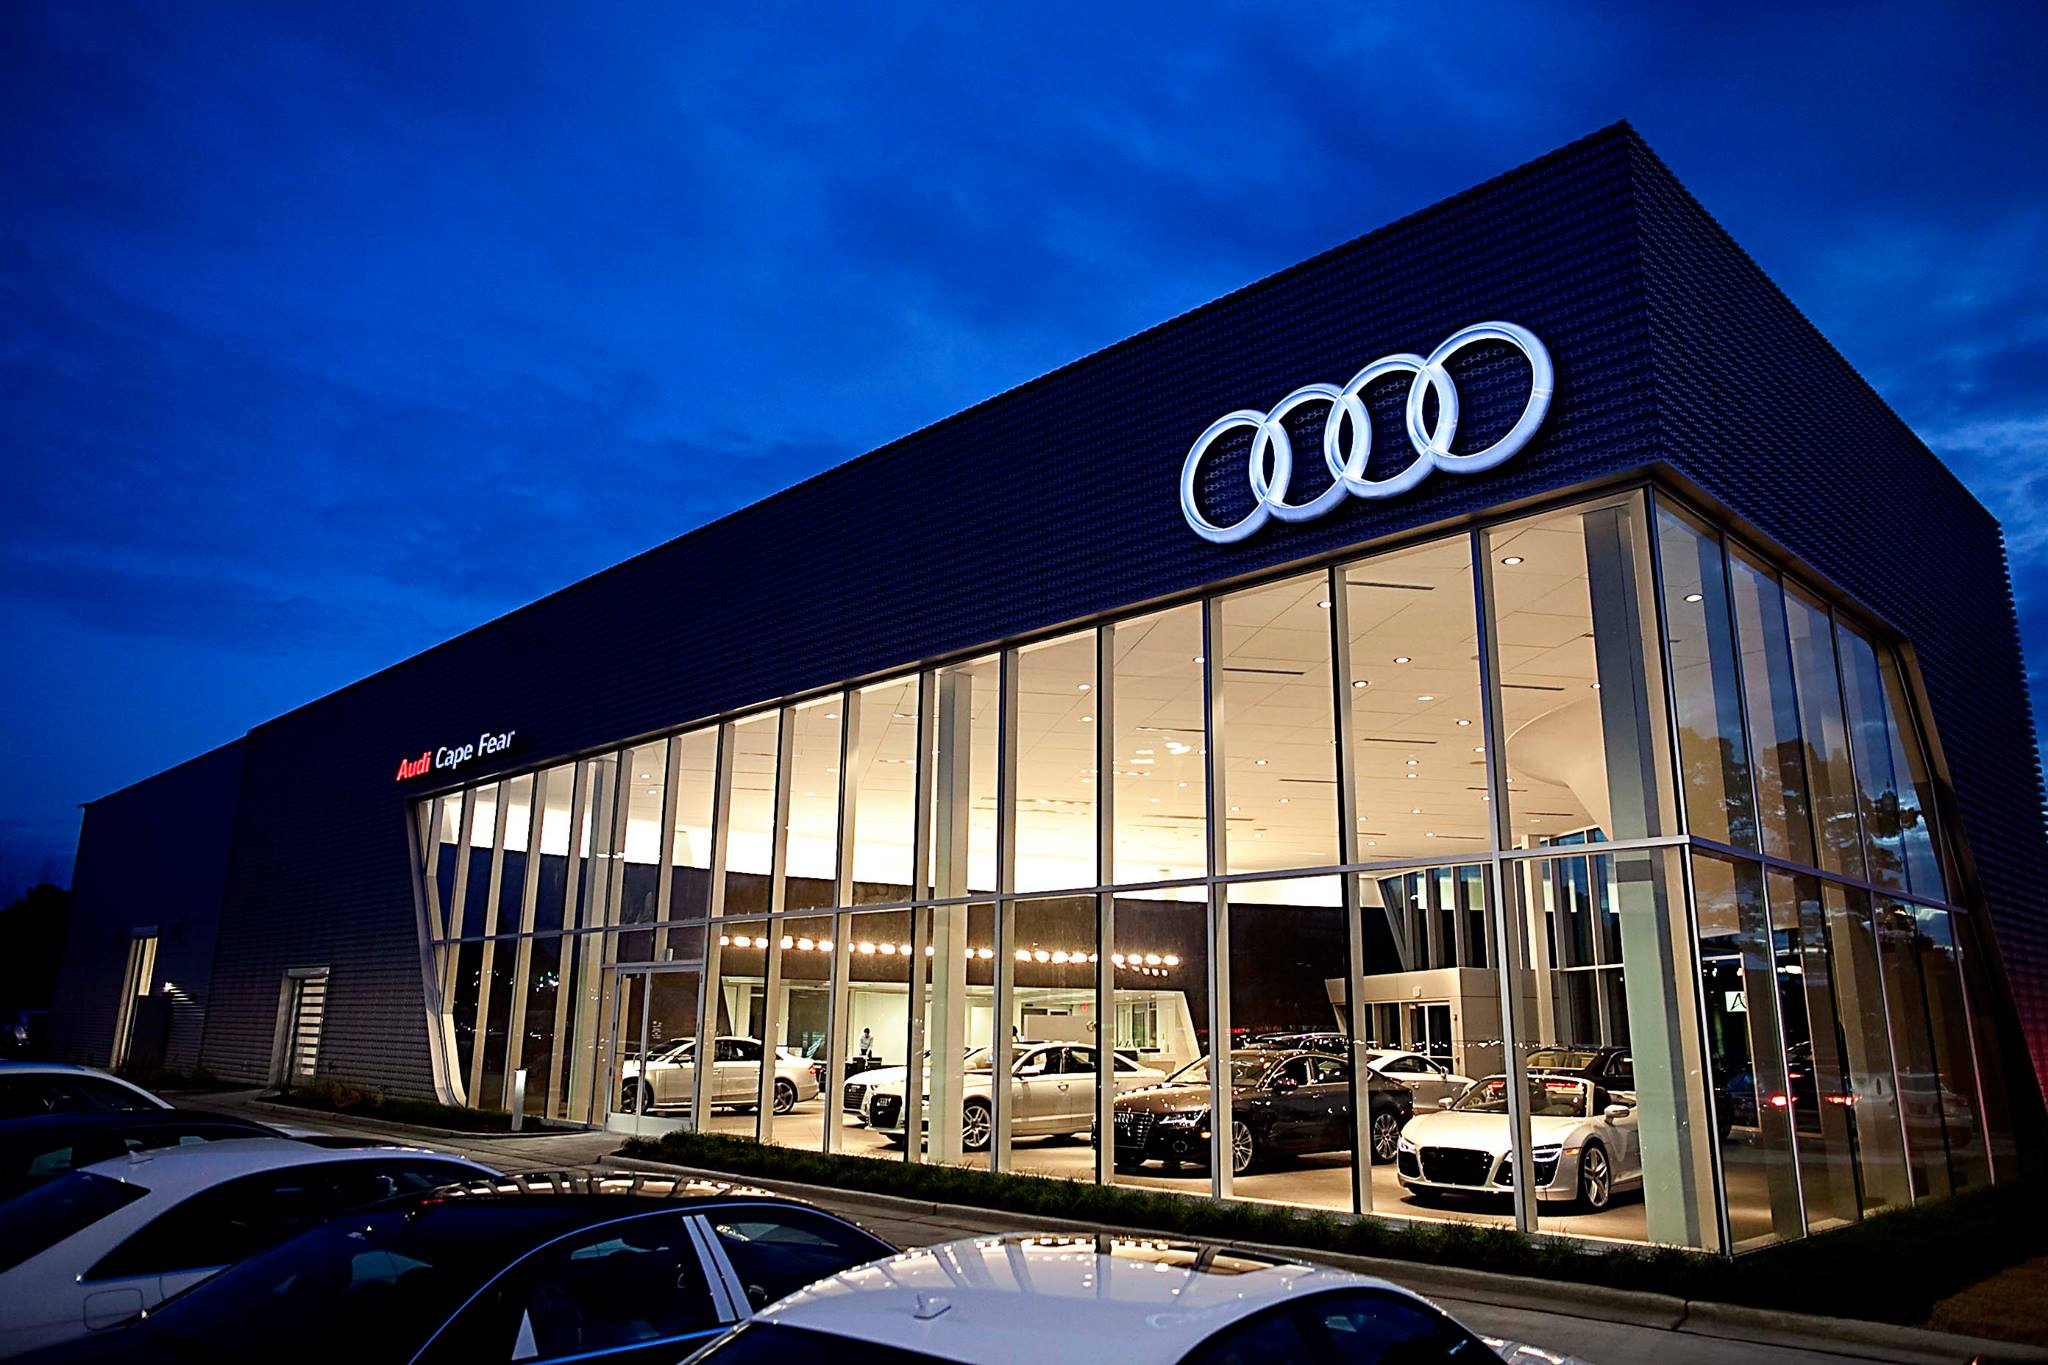 Audi Cape Fear in Wilmington, NC